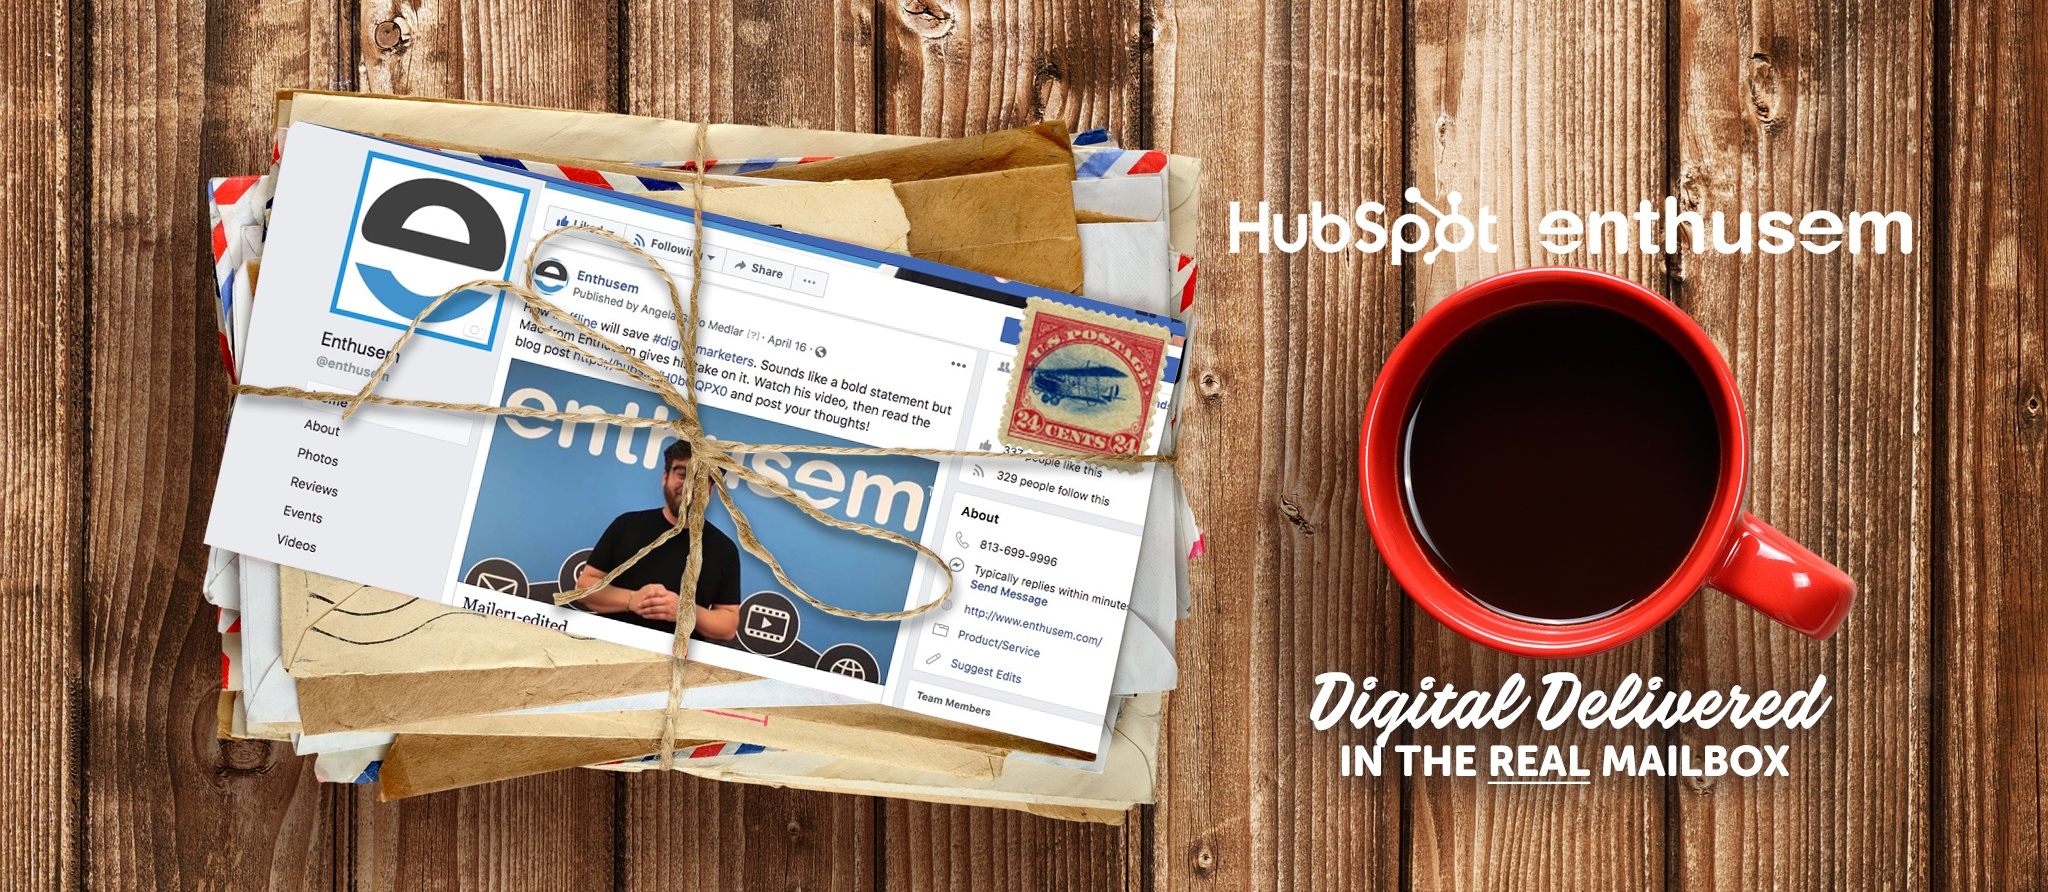 Enthusem Joins HubSpot's Apps for Agency Services Program